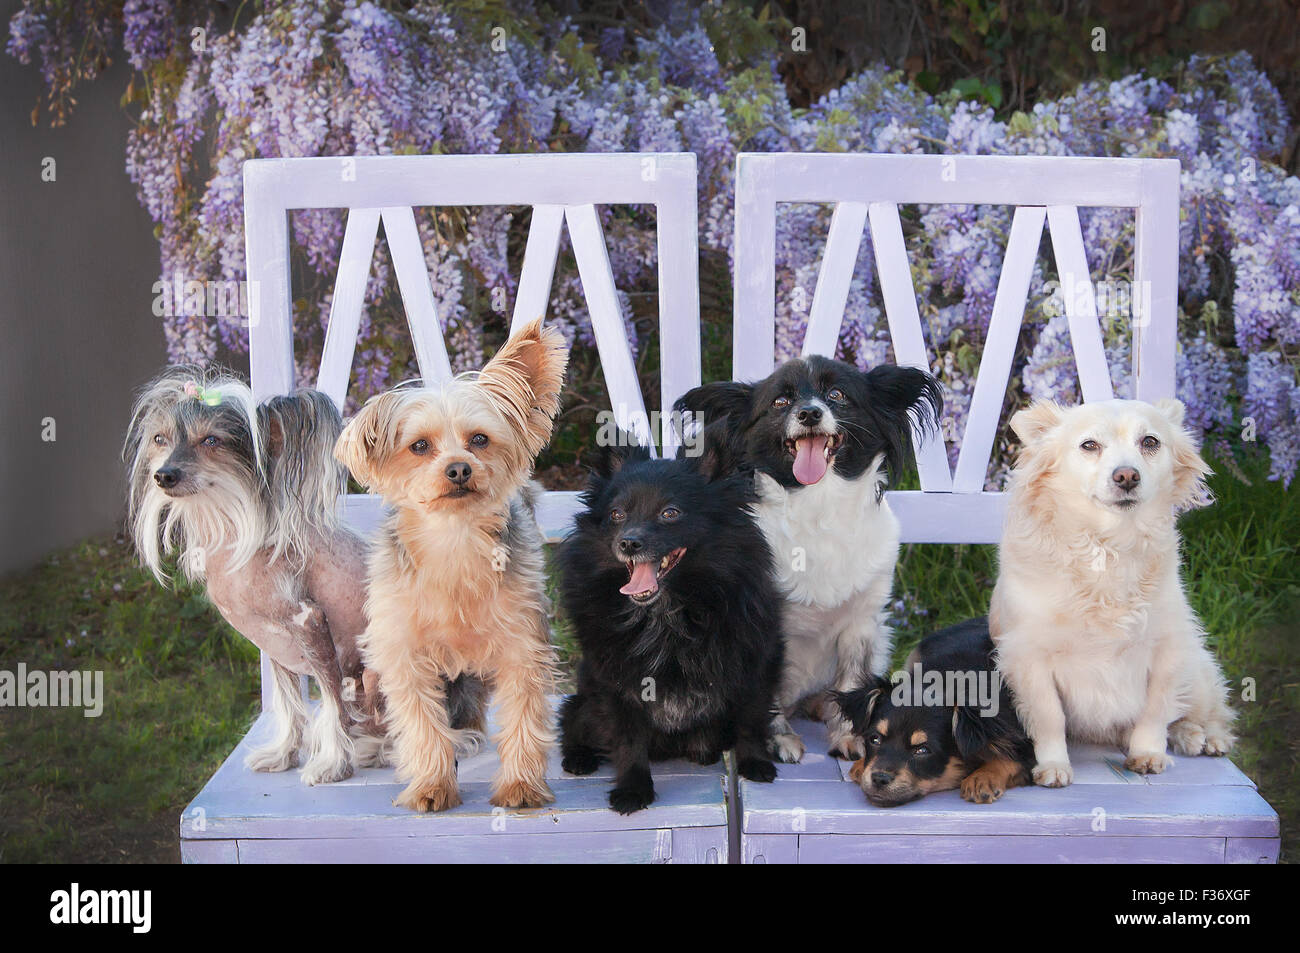 Assortment of 6 small dogs from a rescue group sit on lavendar barn wood chairs in front of wisteria vine floral - Stock Image